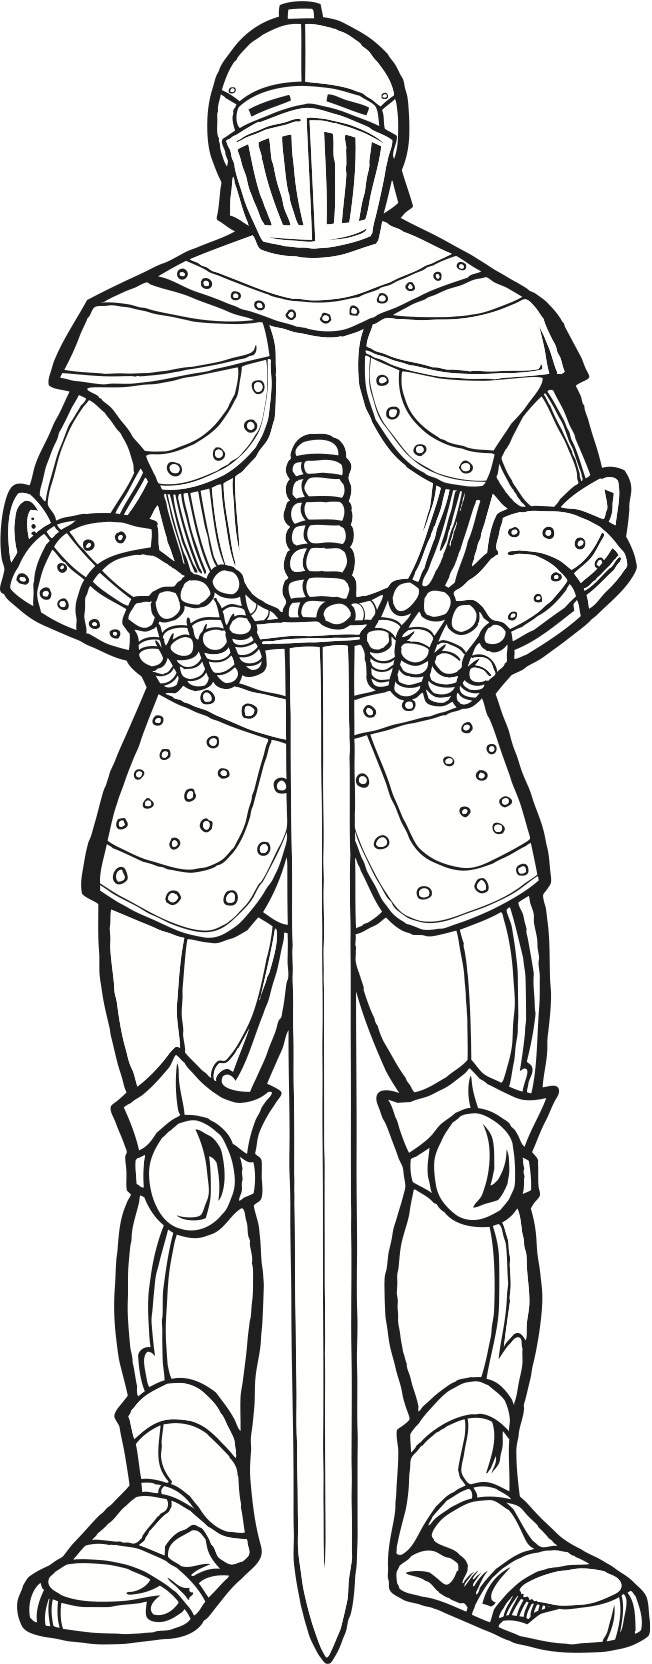 Knight In Armor Coloring Page Clip Art And Graphics Coloring Pages Knights